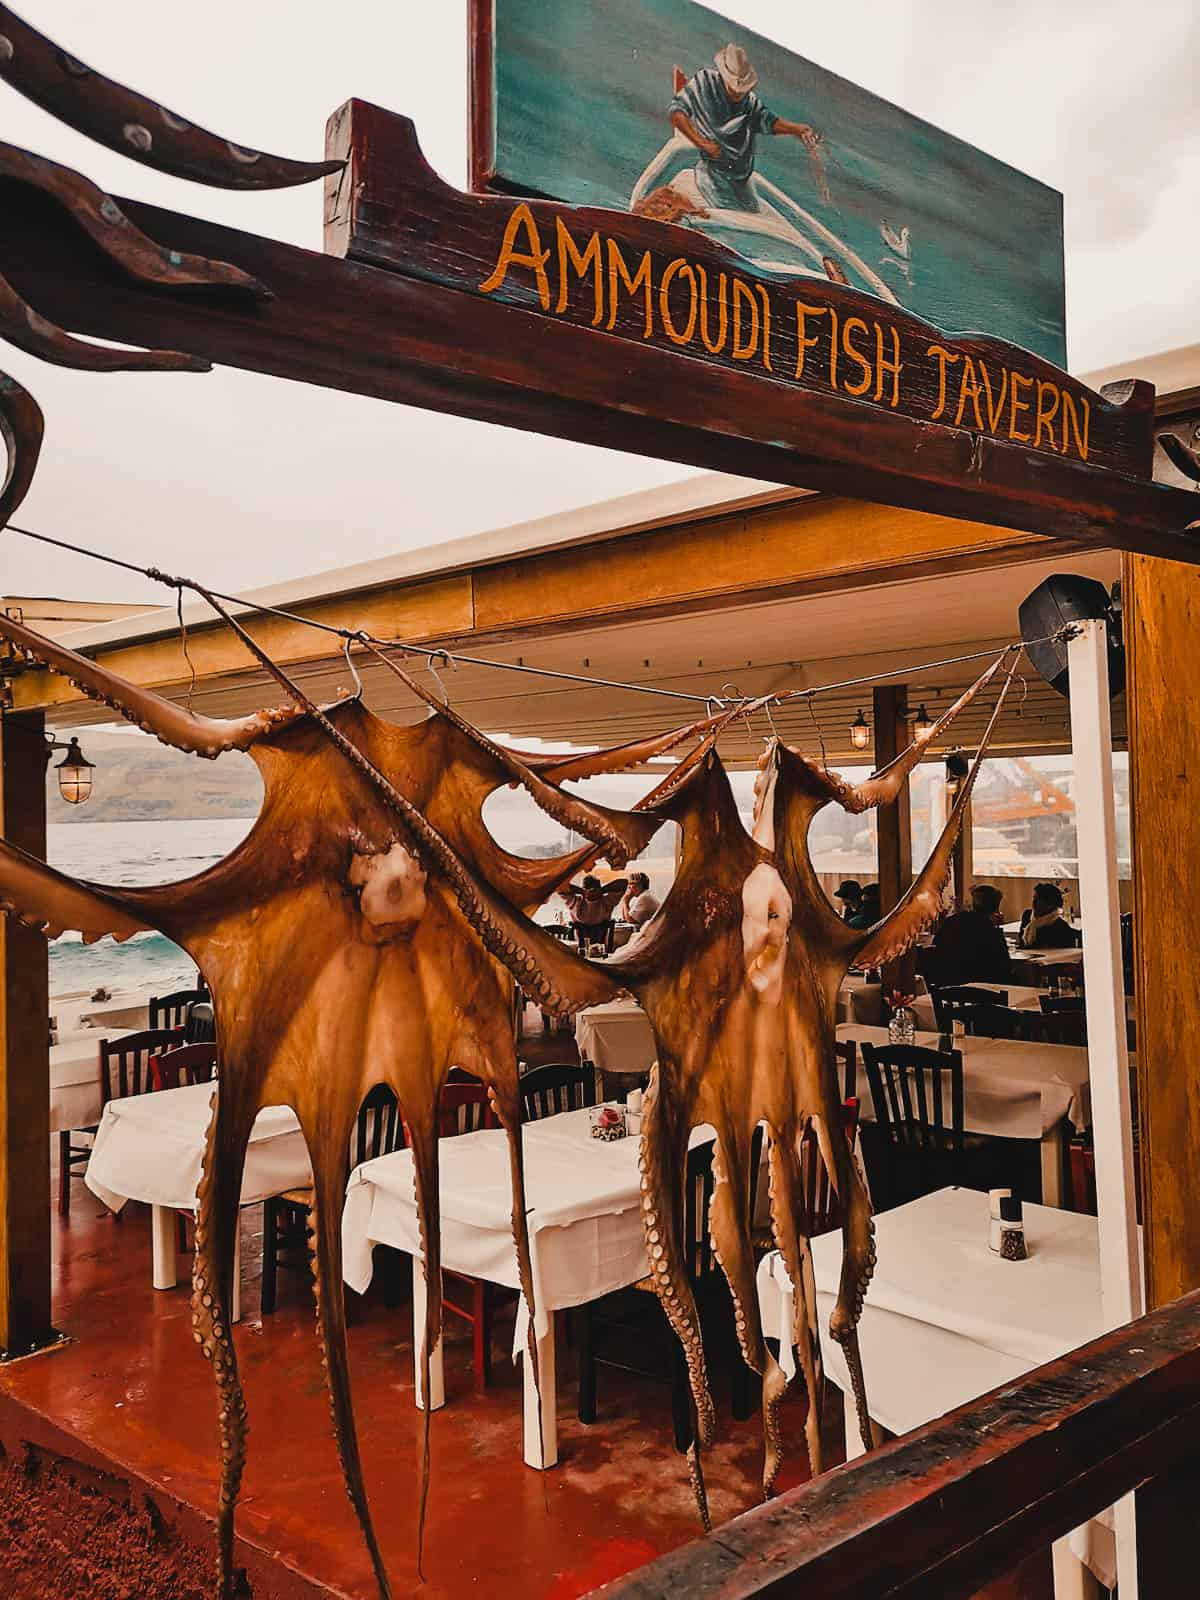 Ammoudi Fish Tavern, Oia, Santorini, Greece